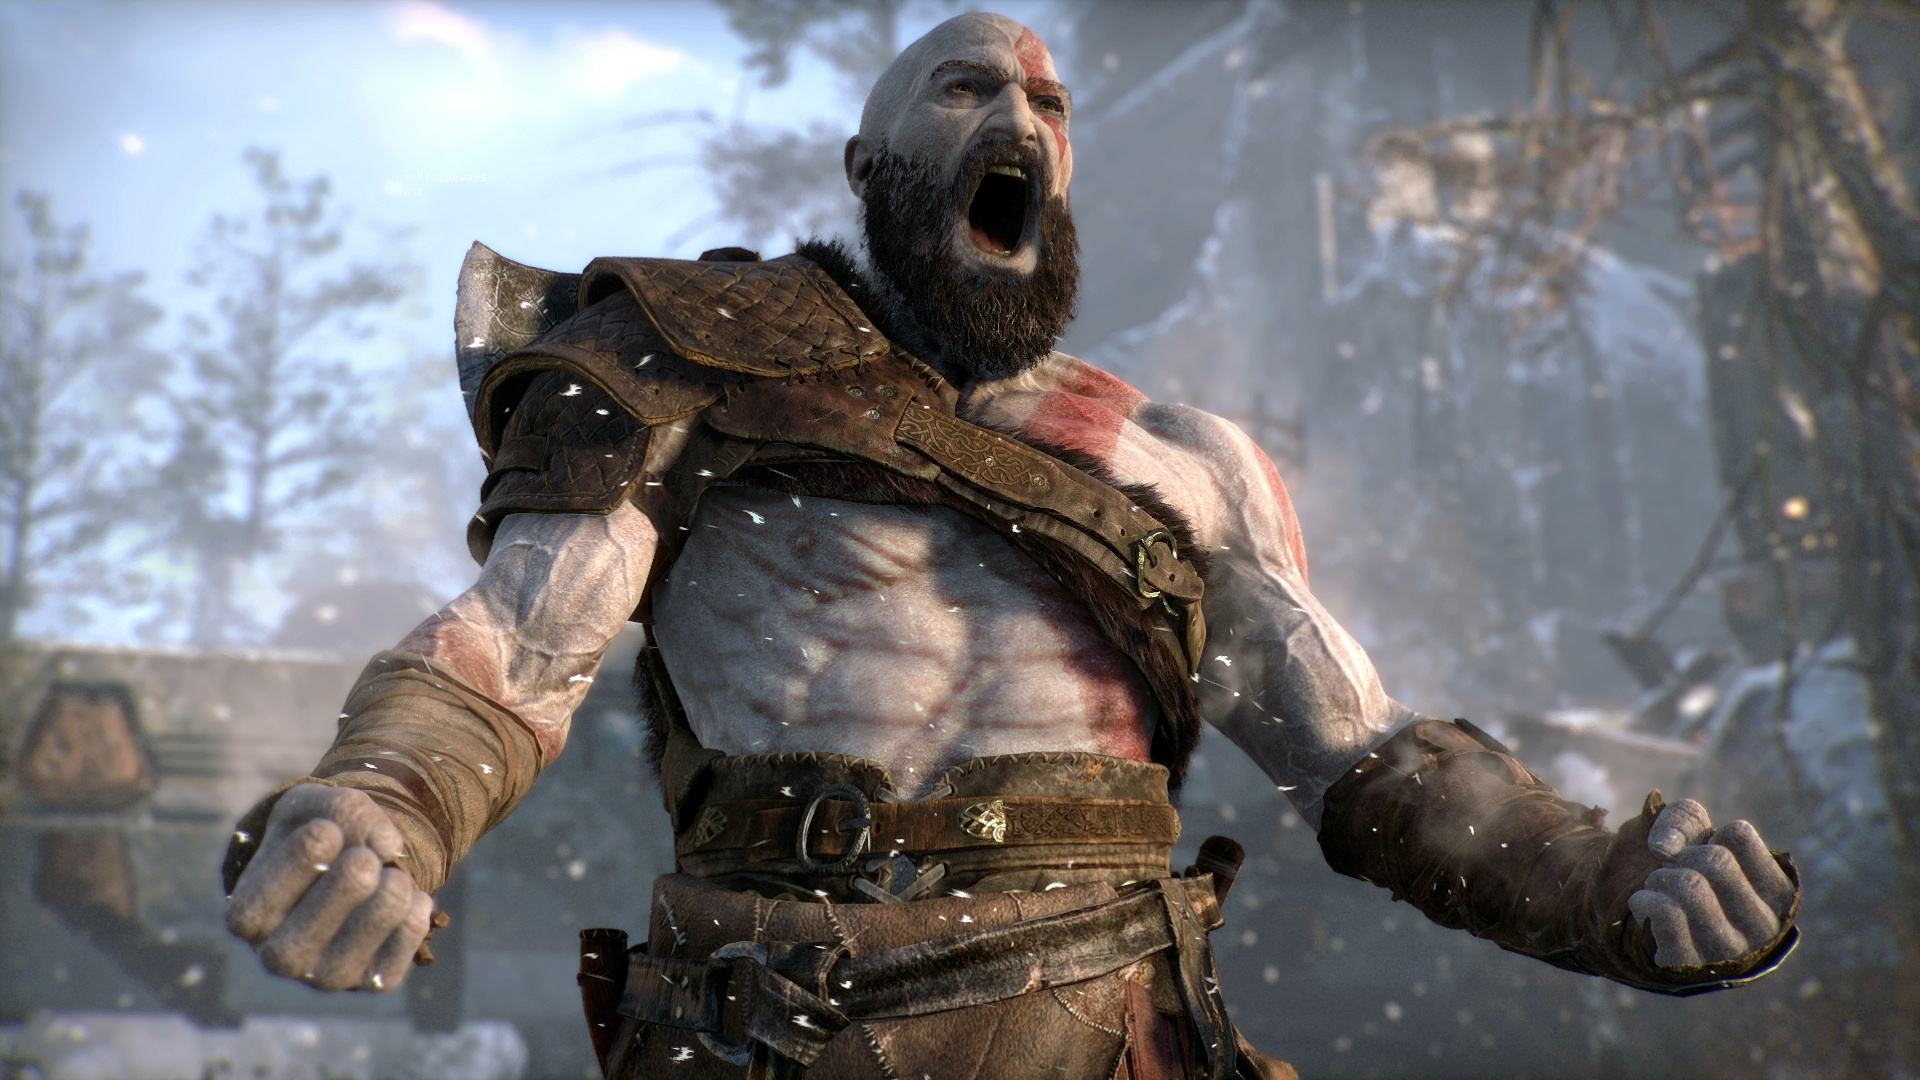 E3 2018: God of War is getting New Game Plus